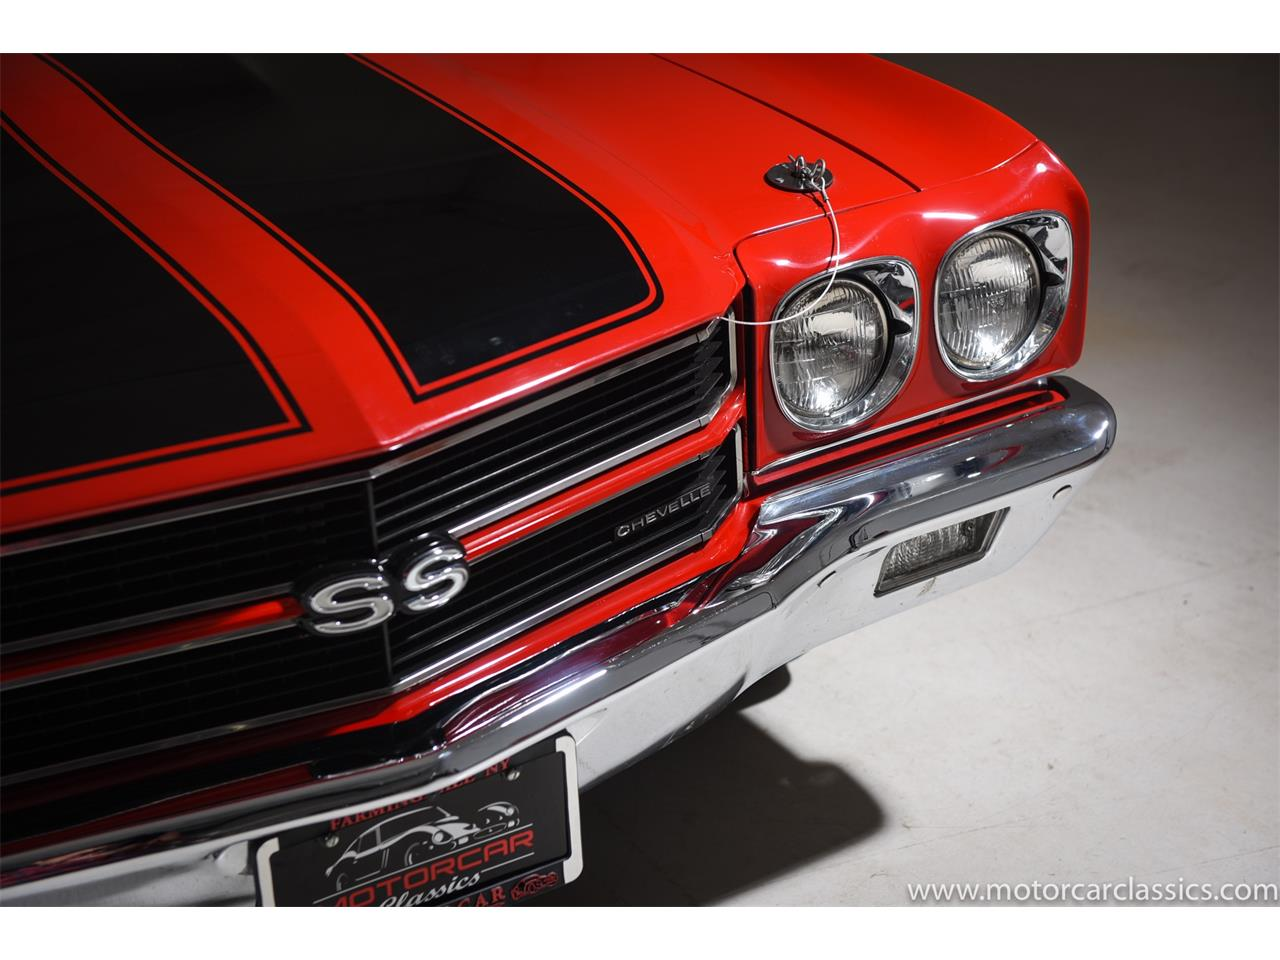 1970 Chevrolet Chevelle for sale in Farmingdale, NY – photo 16